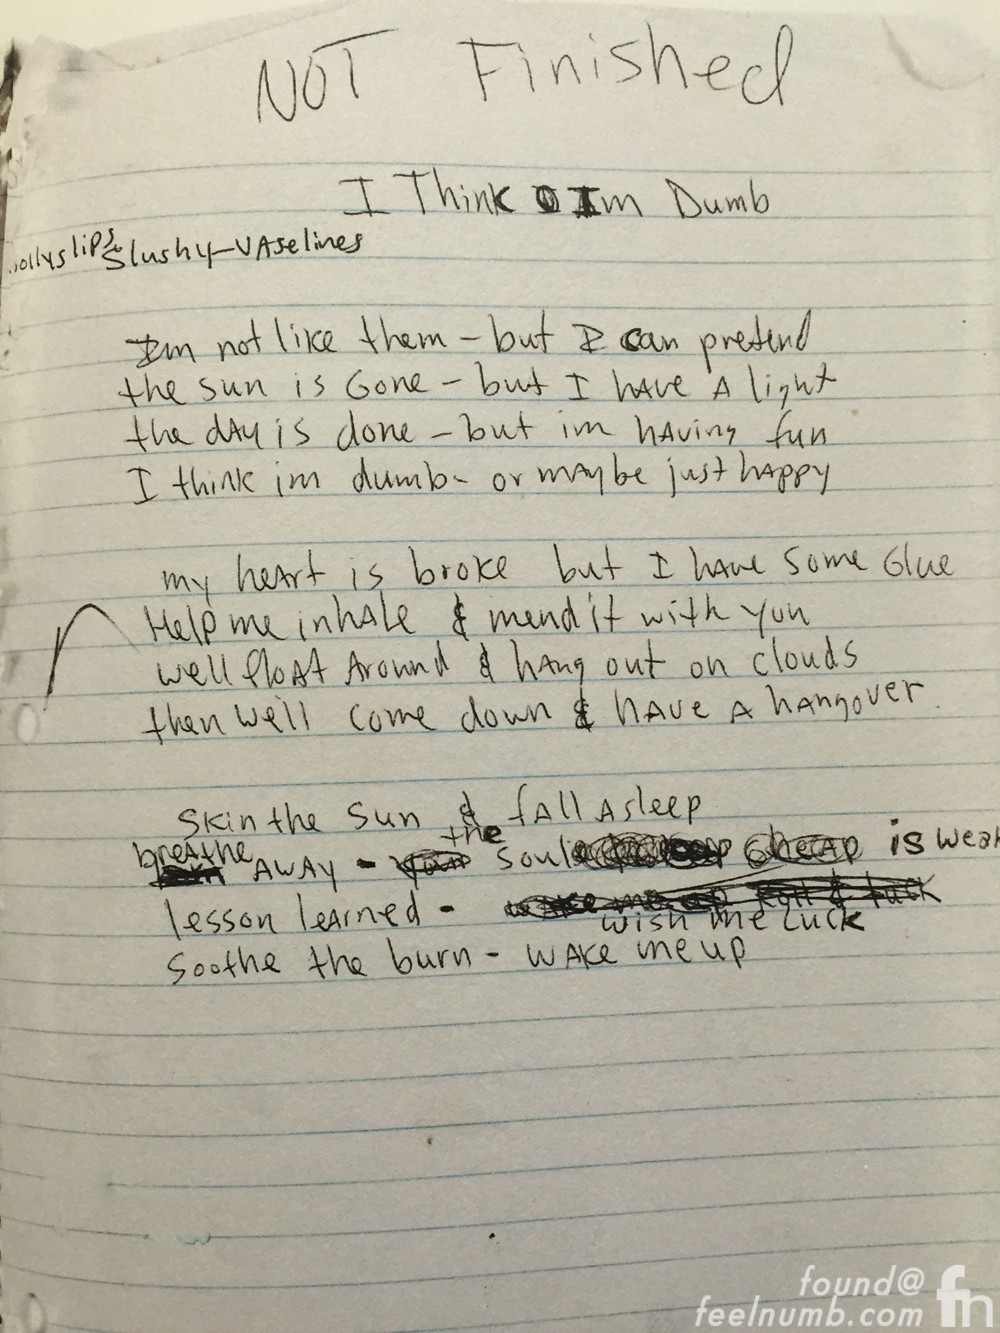 Kurt Cobain Dumb Lyrics Notebook Journals Frances Bean